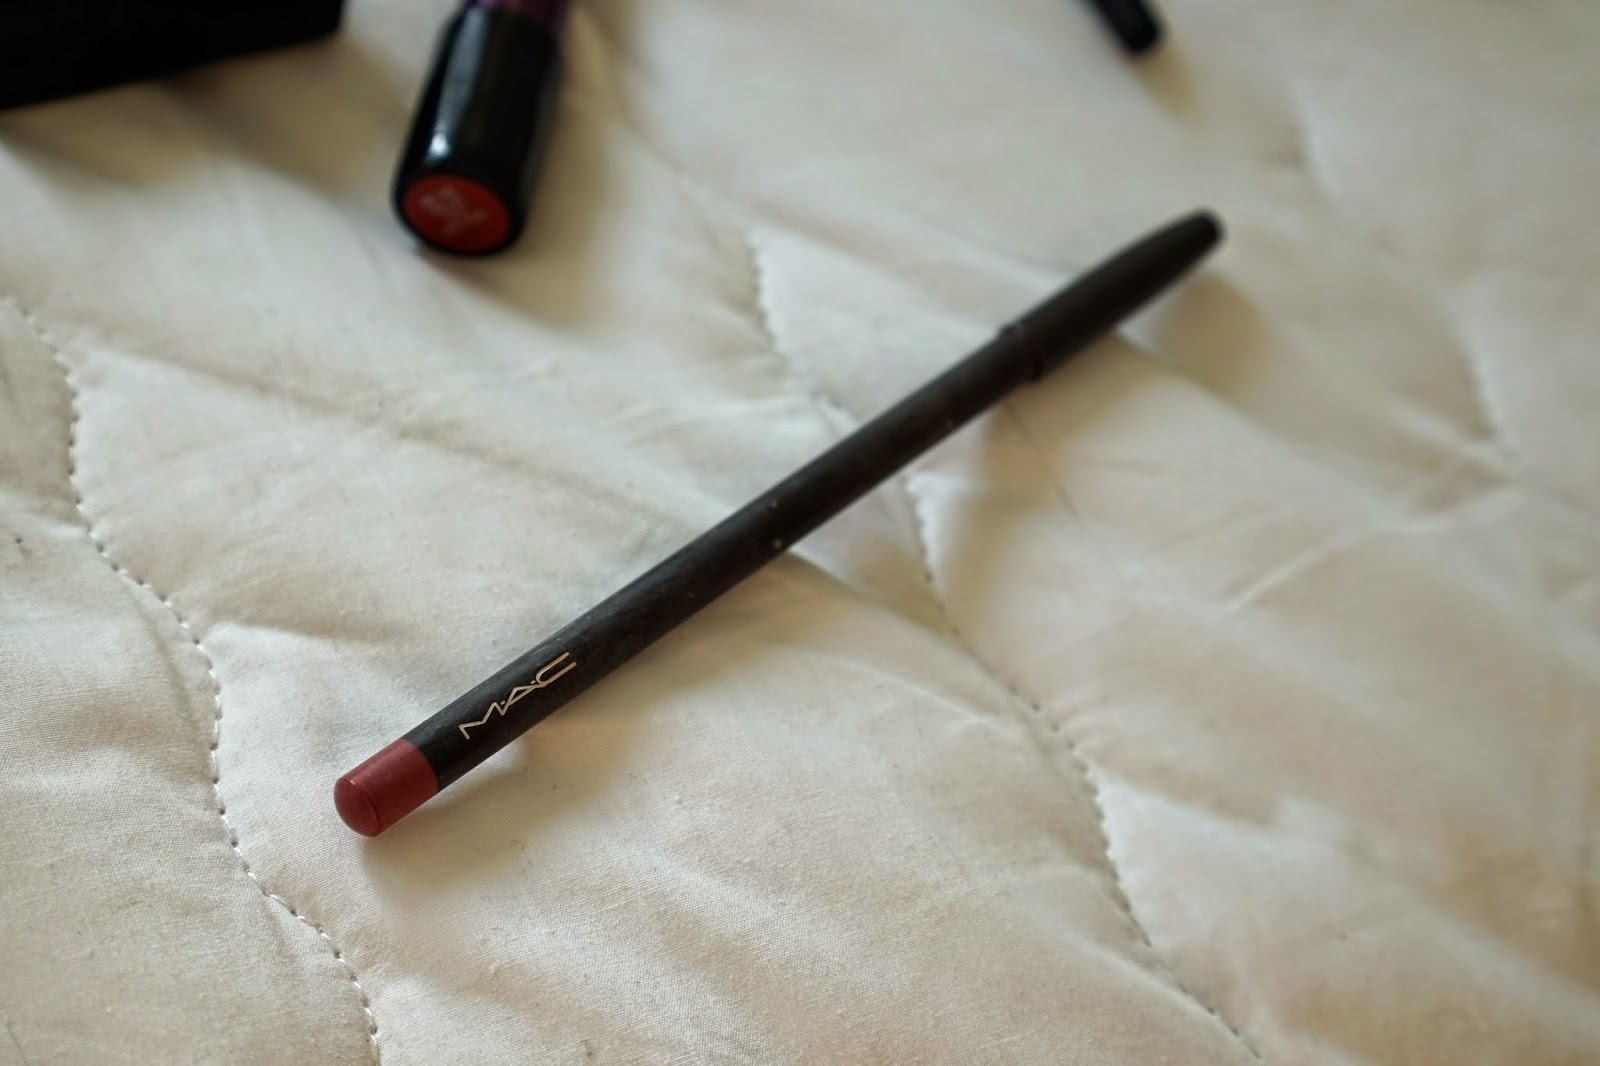 mac lip pencil in soar